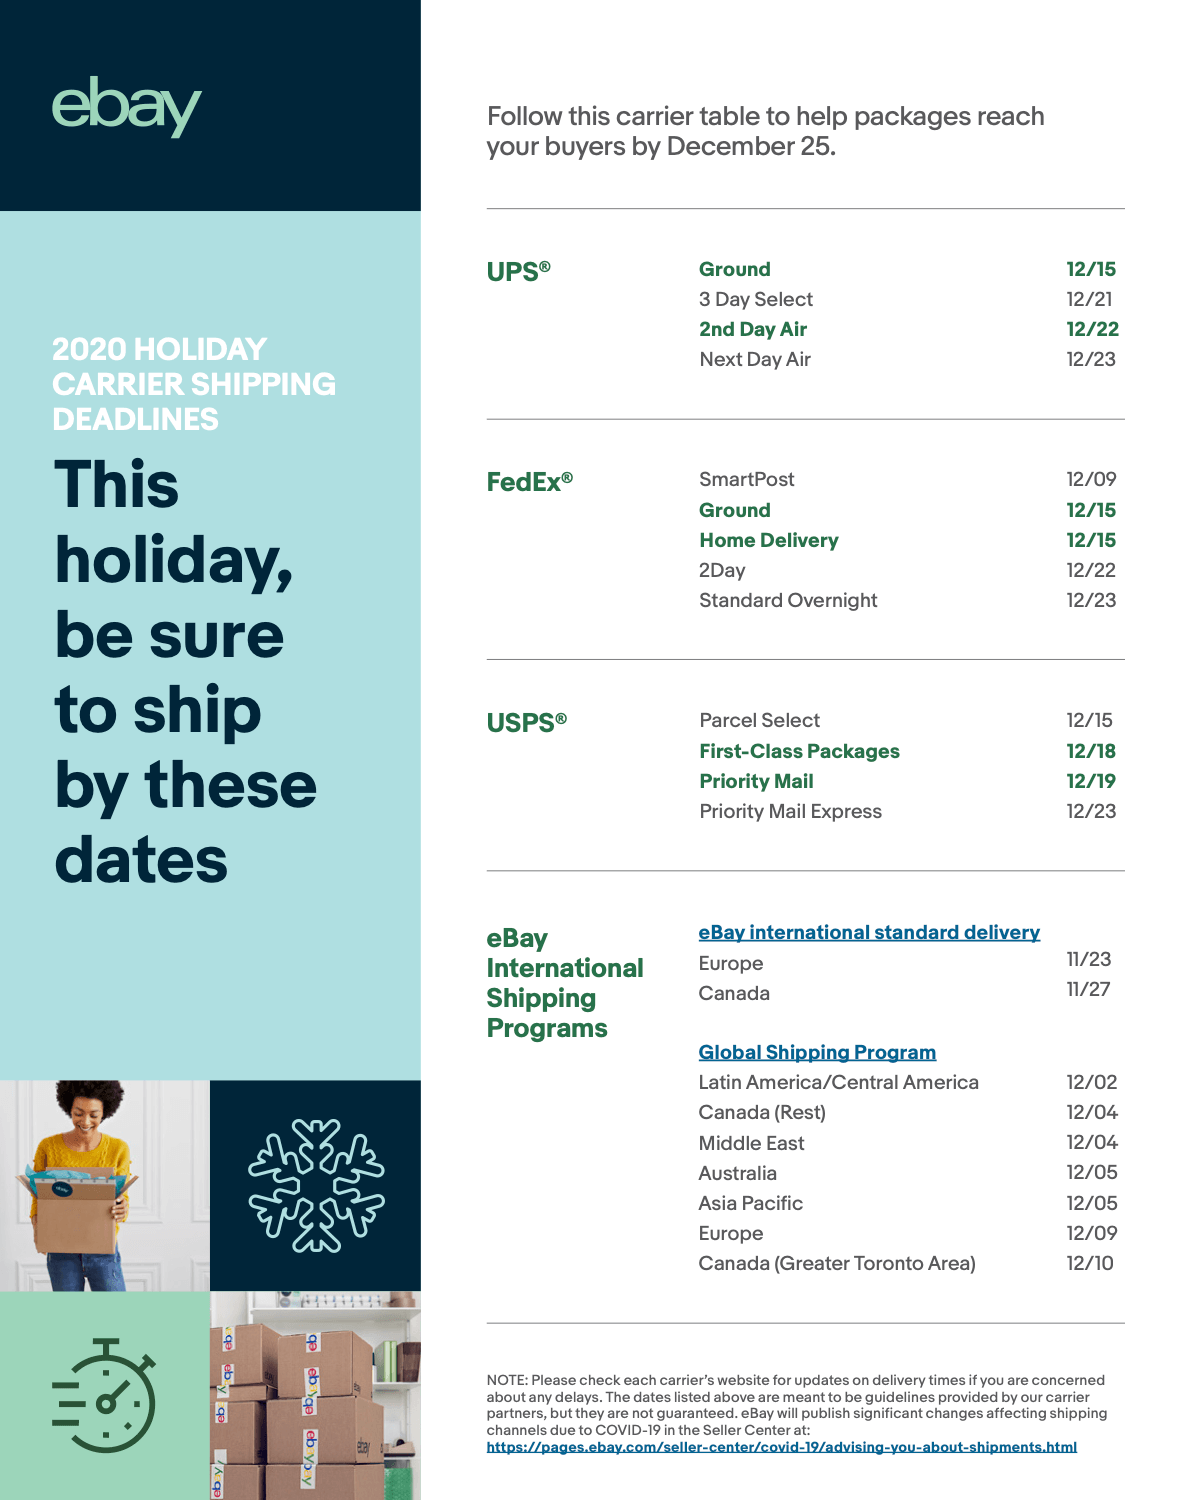 2020 Holiday Carrier Shipping Deadlines